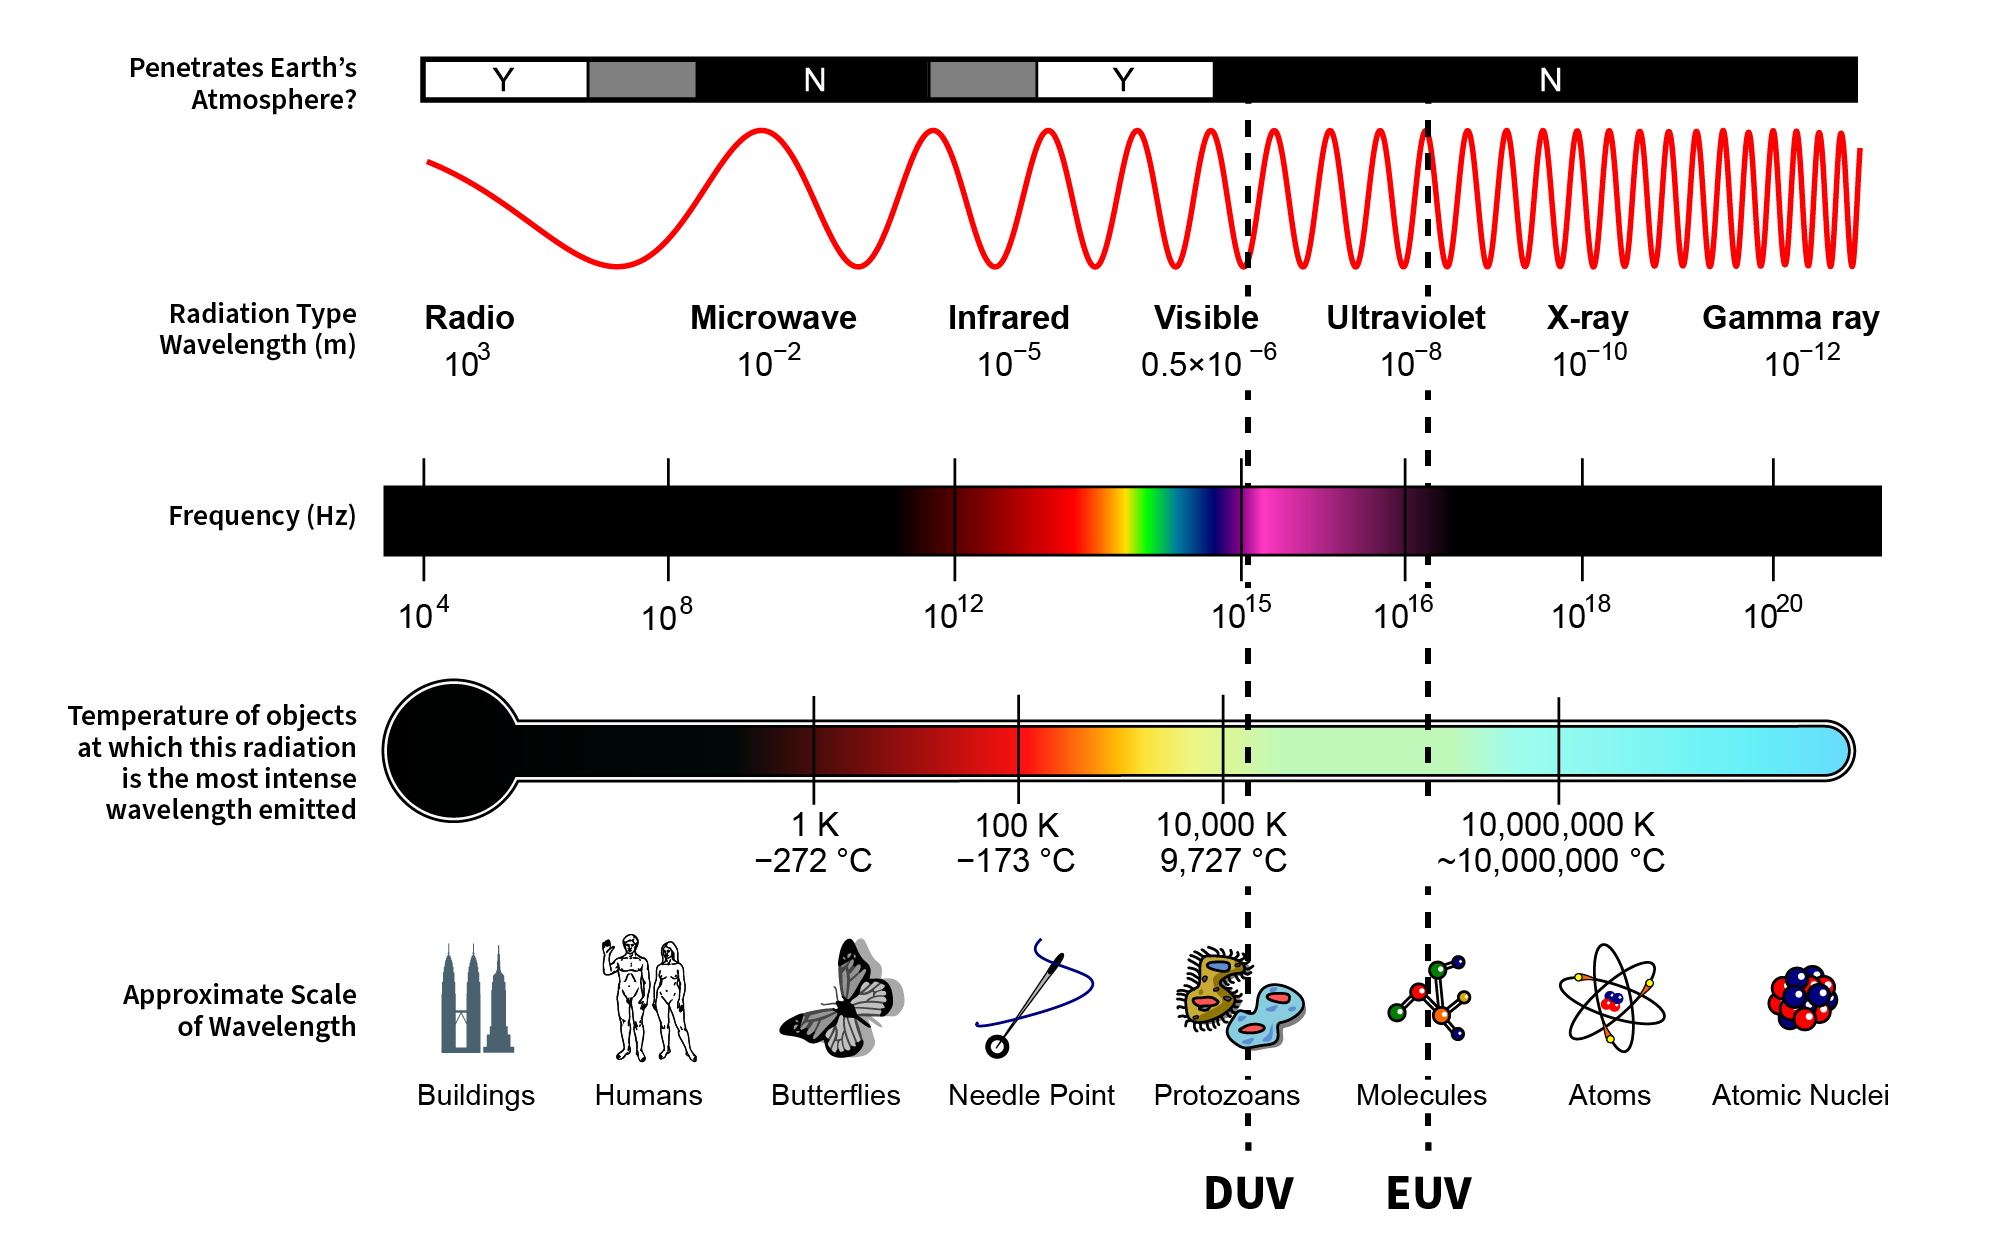 electromagnetic spectrum with the approximate location of the DUV and EUV wavelengths highlighted. DUV wavelengths are about the size of bacteria, whereas EUV wavelengths are closer to the size of molecules.